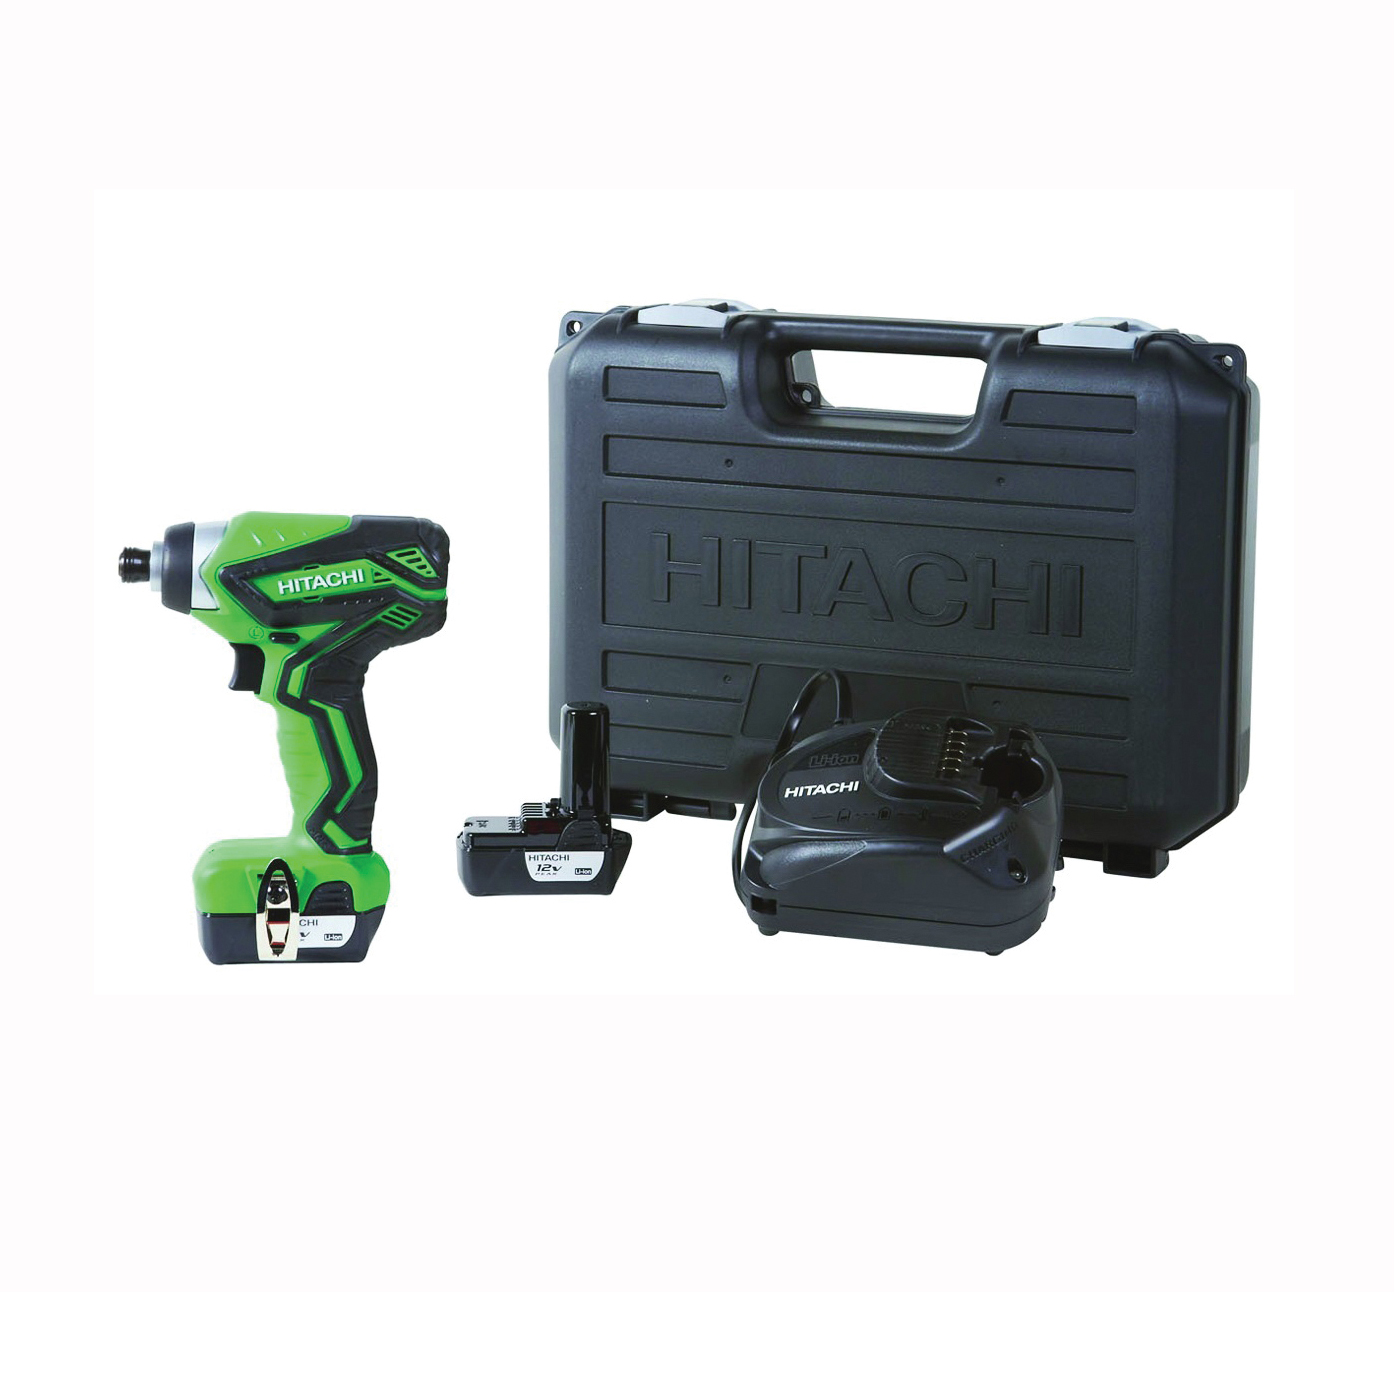 Picture of Metabo HPT WH10DFL2M Impact Driver, 12 V Battery, 1/4 in Drive, Black/Green